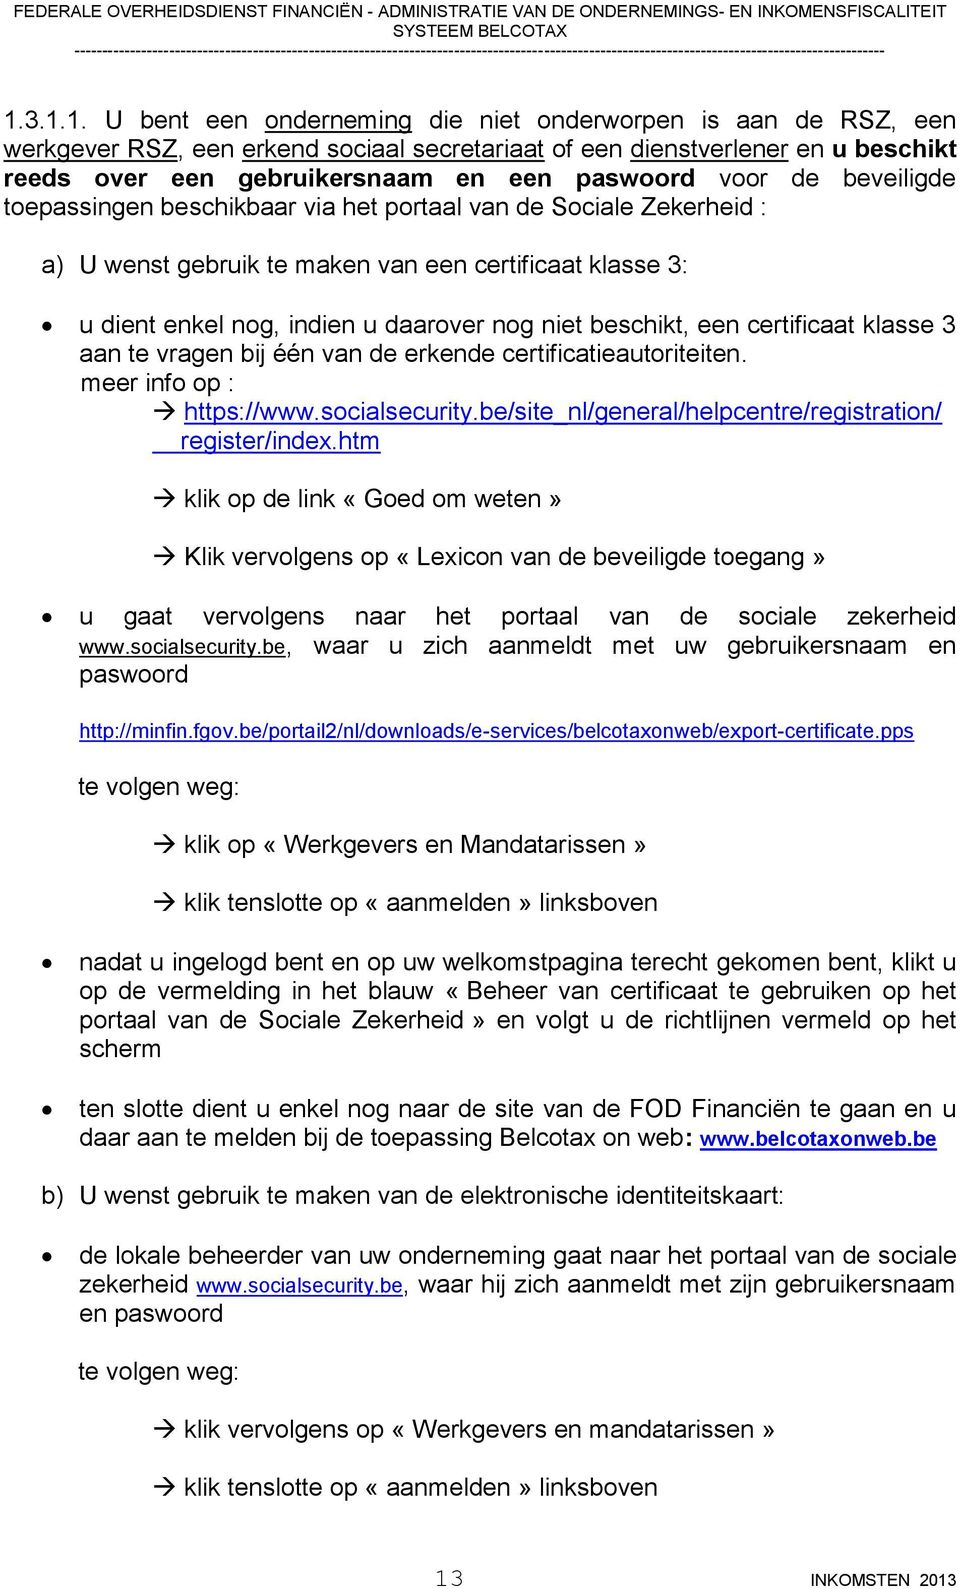 beschikt, een certificaat klasse 3 aan te vragen bij één van de erkende certificatieautoriteiten. meer info op : https://www.socialsecurity.be/site_nl/general/helpcentre/registration/ register/index.